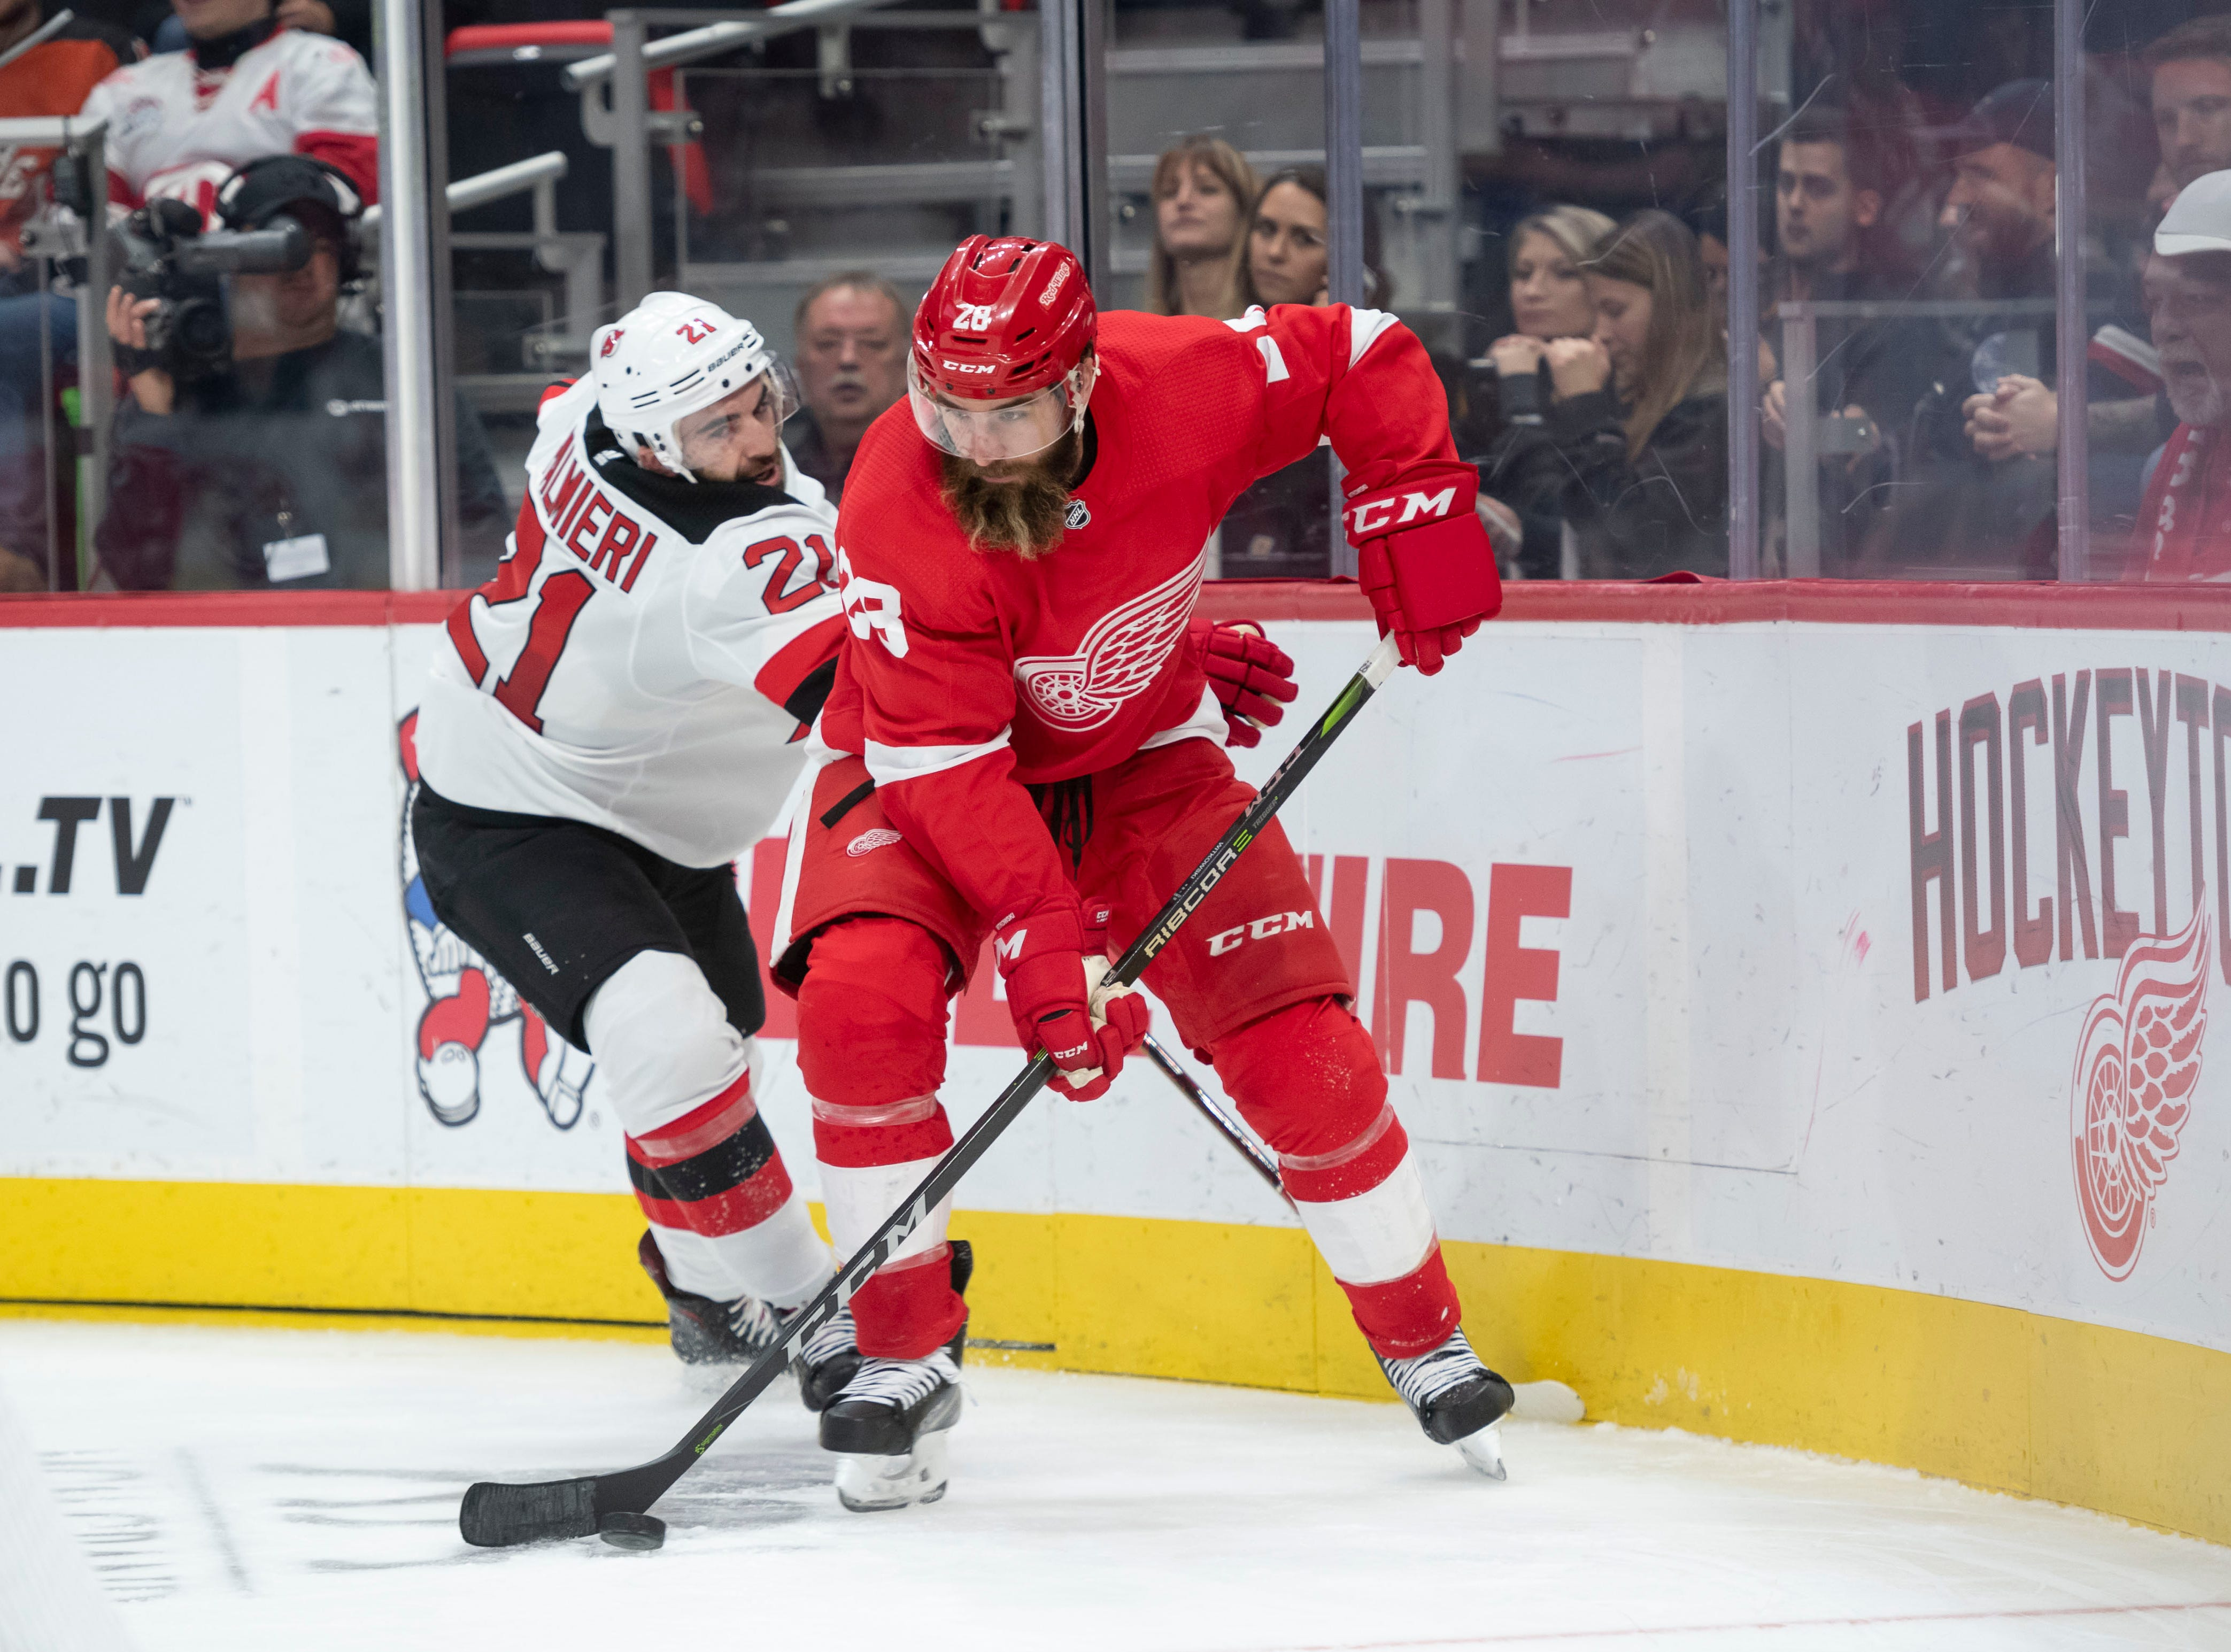 Detroit defenseman Luke Witkowski keeps the puck away from New Jersey right wing Kyle Palmieri            Photos are of the Detroit Red Wings vs. the New Jersey  Devils, at Little Caesars Arena, in Detroit, November 1, 2018.  (David Guralnick / The Detroit News)